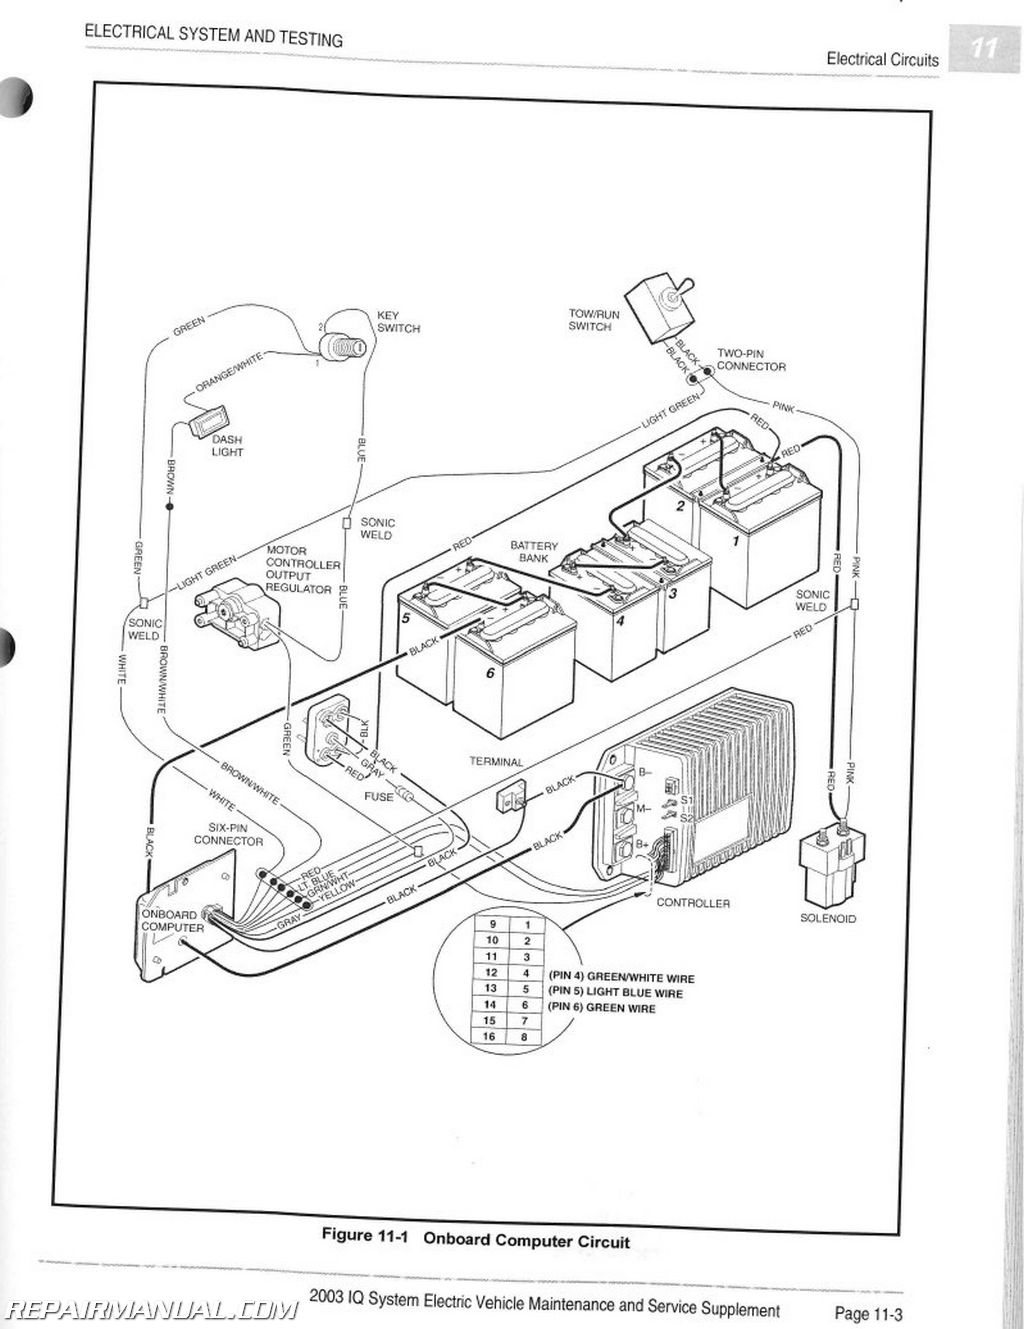 Wiring Diagram 27 Club Car Ds Wiring Diagram